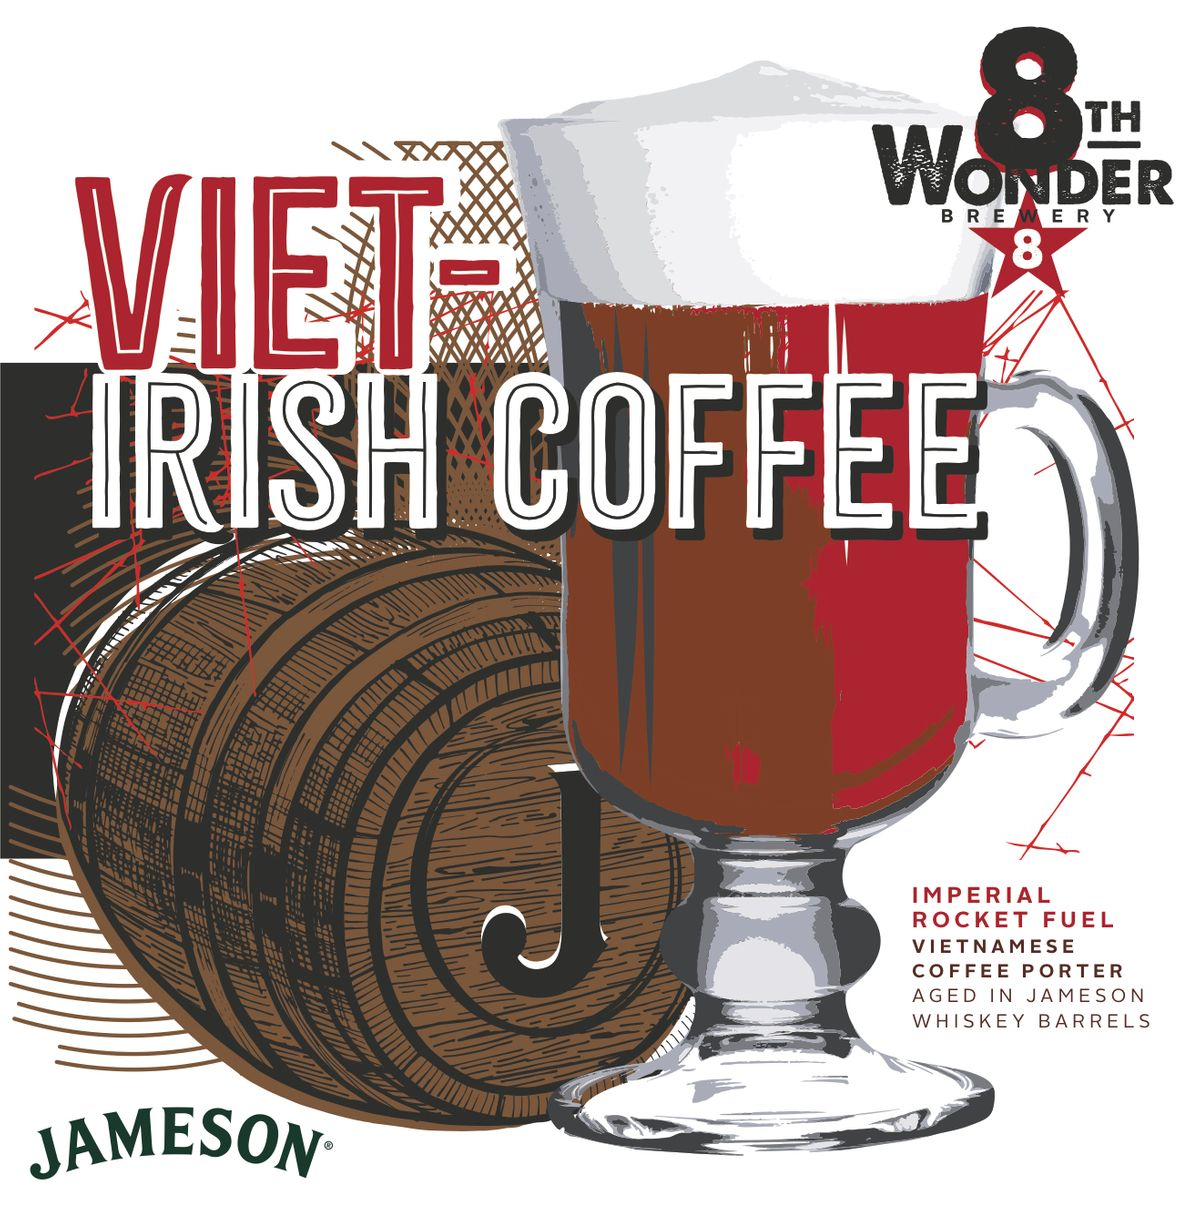 Viet-Irish Labels4_SM copy.jpg